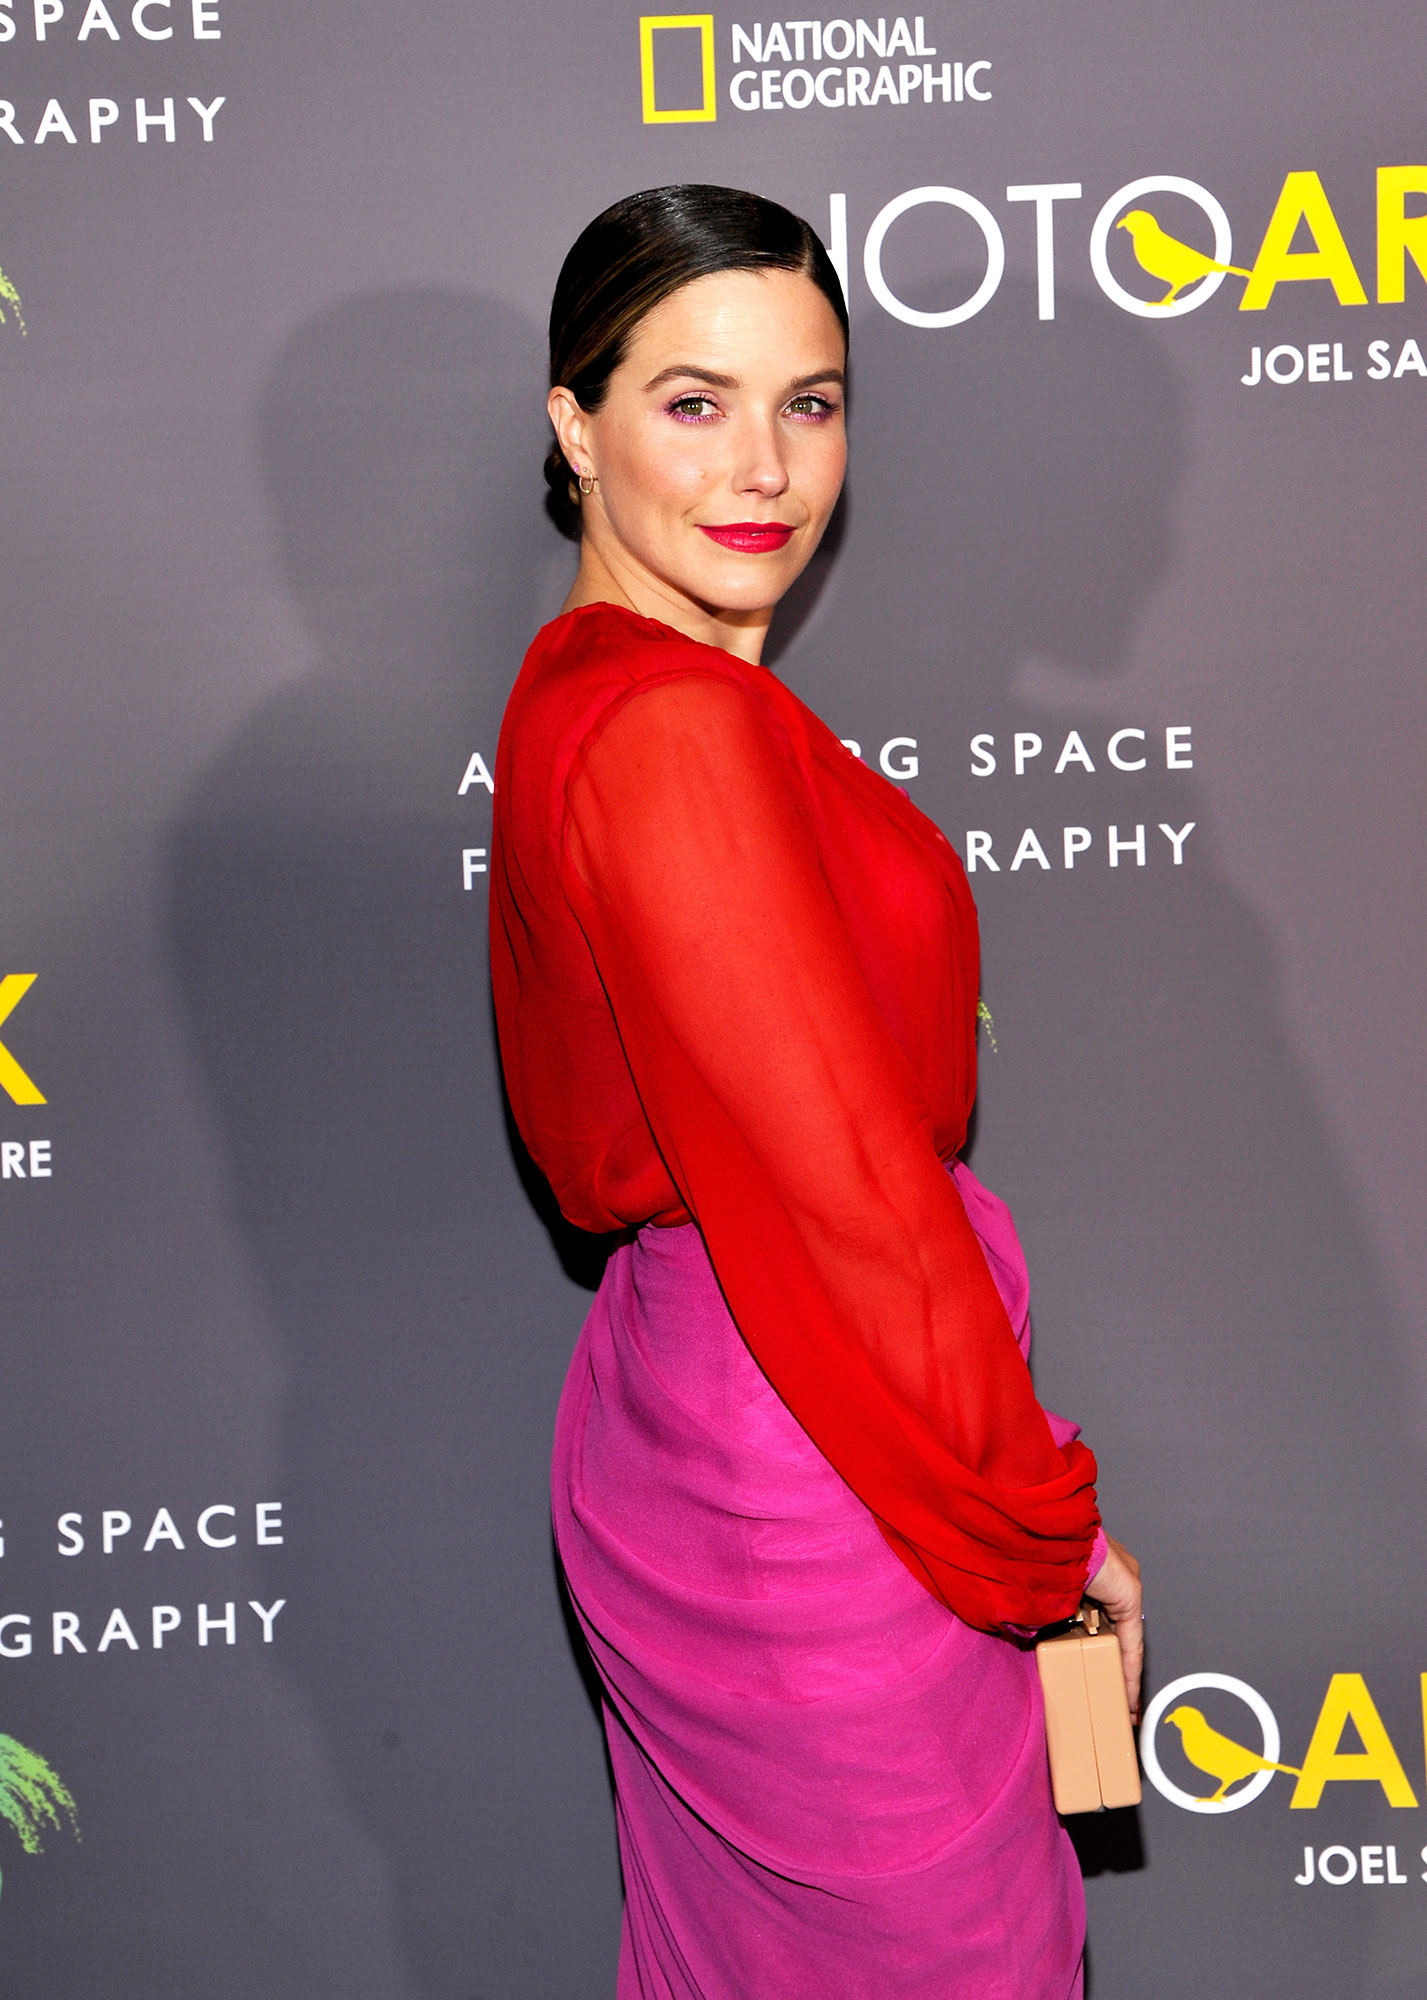 Sophia Bush - Sophia Bush attends the National Geographic Photo Ark at Annenberg Space For Photography on October 11, 2018 in Century City, California.